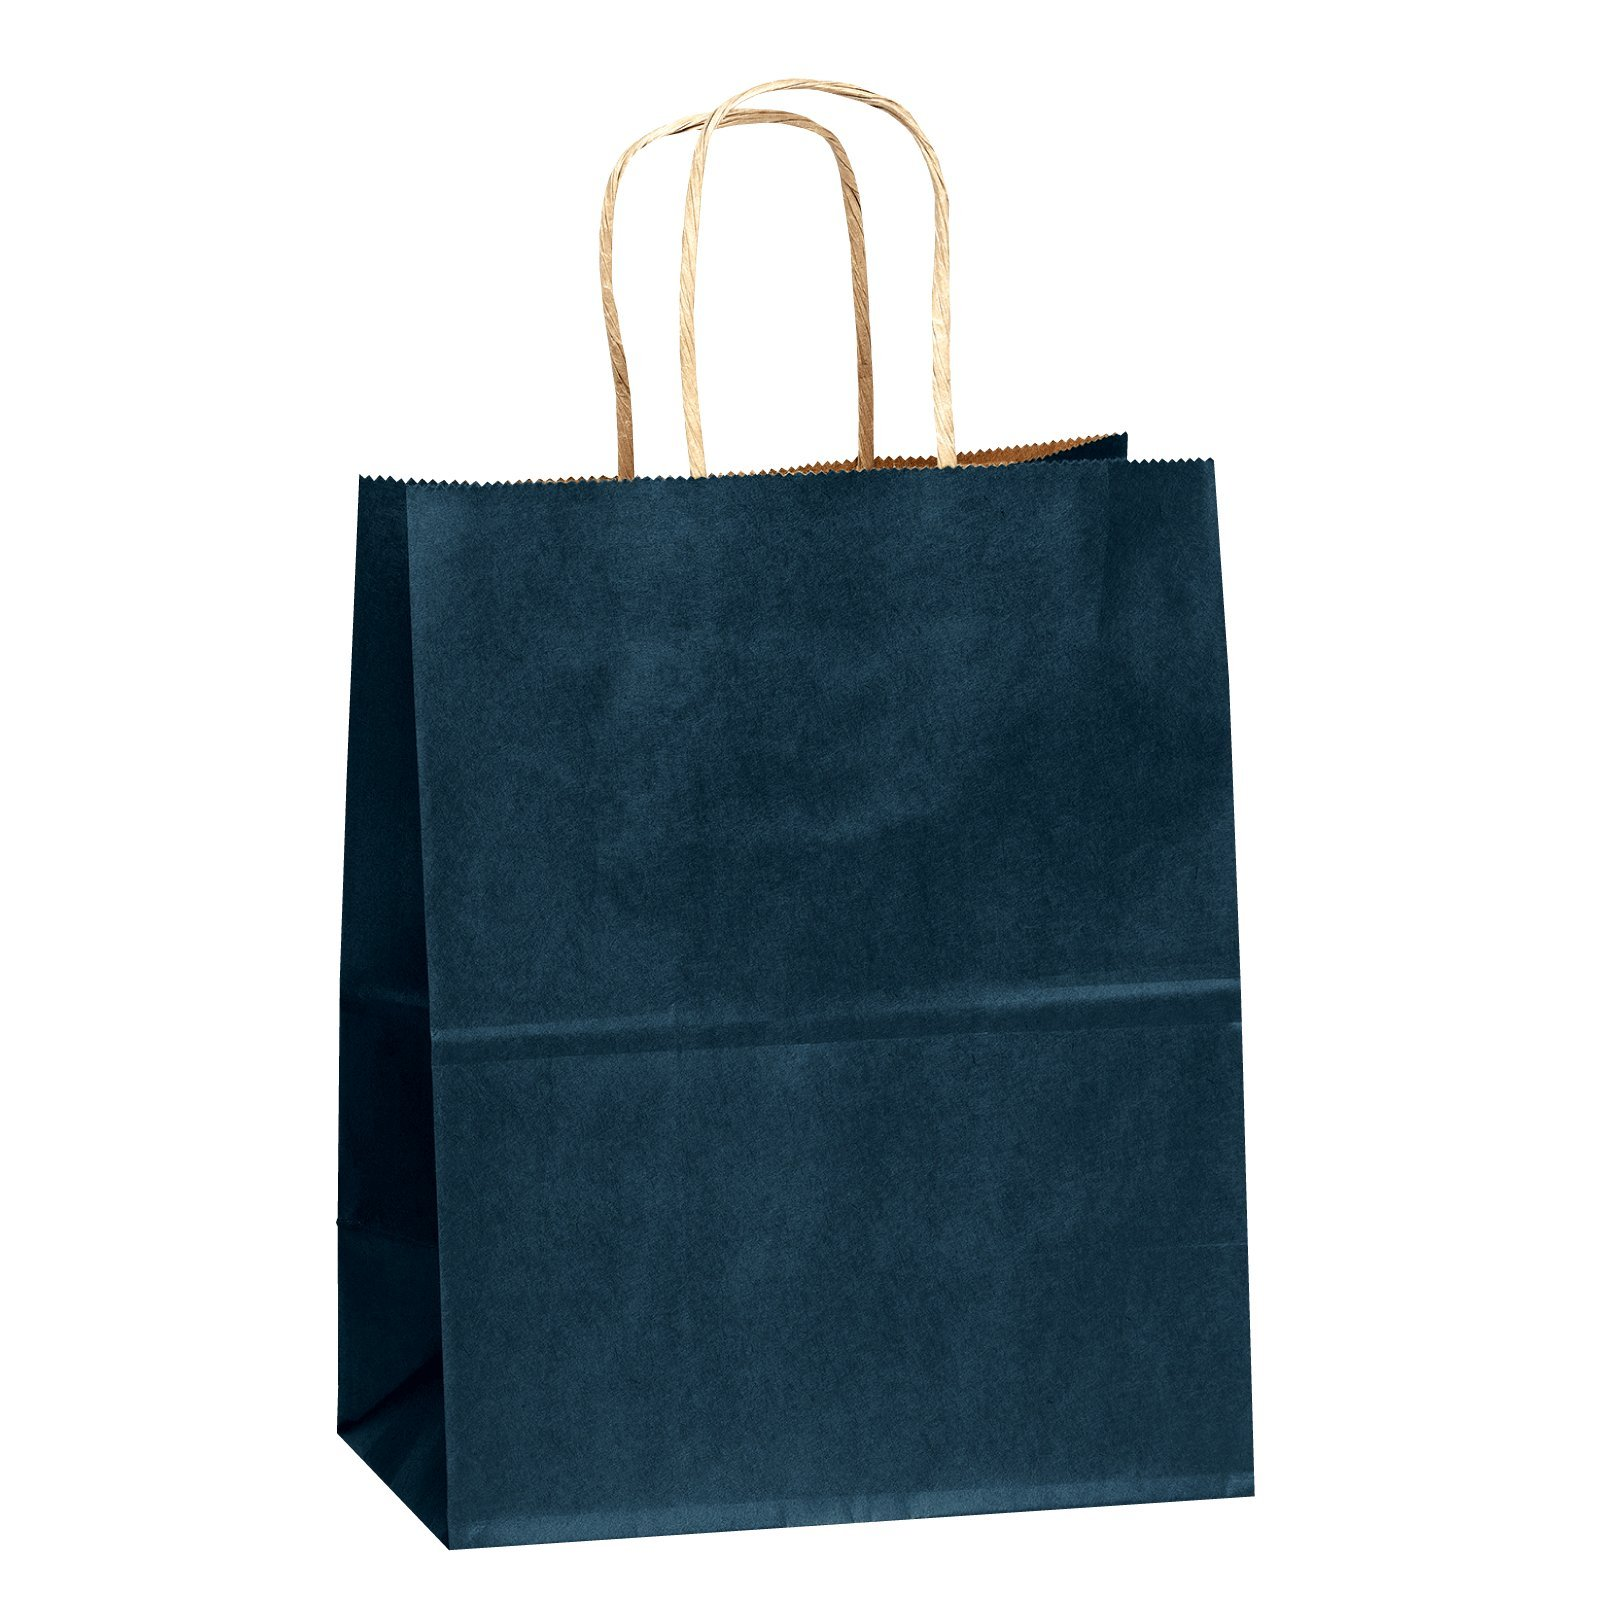 Flexicore Packaging 8''x4.75''x10.25'' Navy Blue Kraft Paper Bags - 100ct, FSC Certified Materials, Shopping, Merchandise, Party, Gift Bags